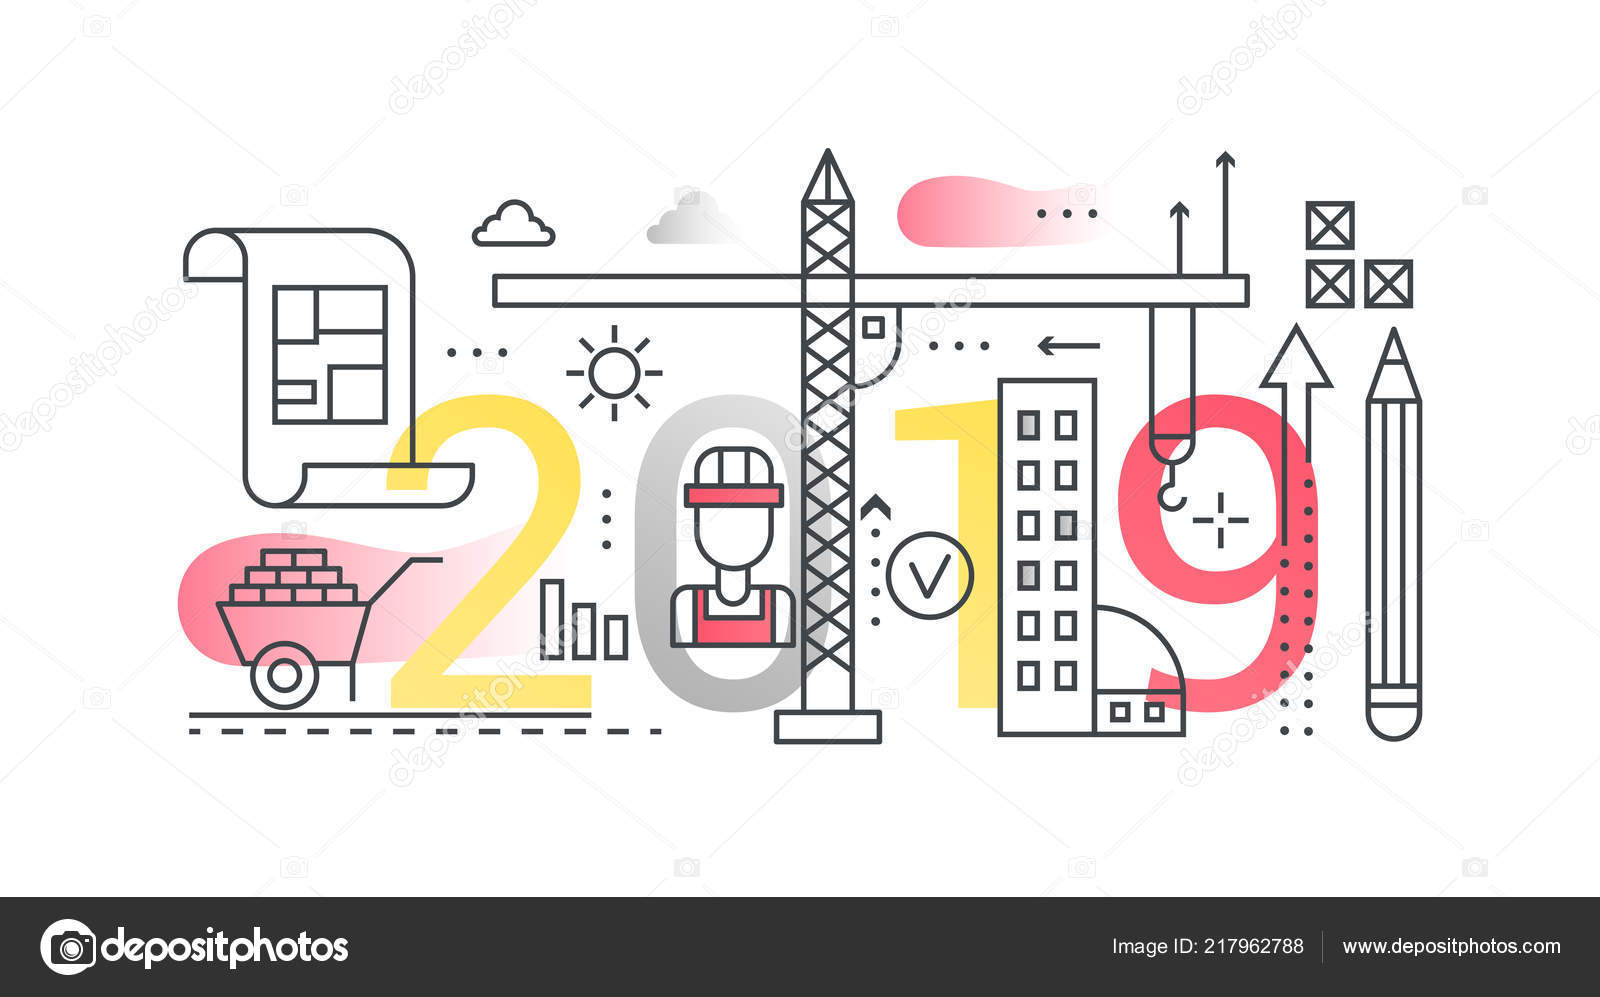 Building Construction 2019 Word Trendy Composition Concept